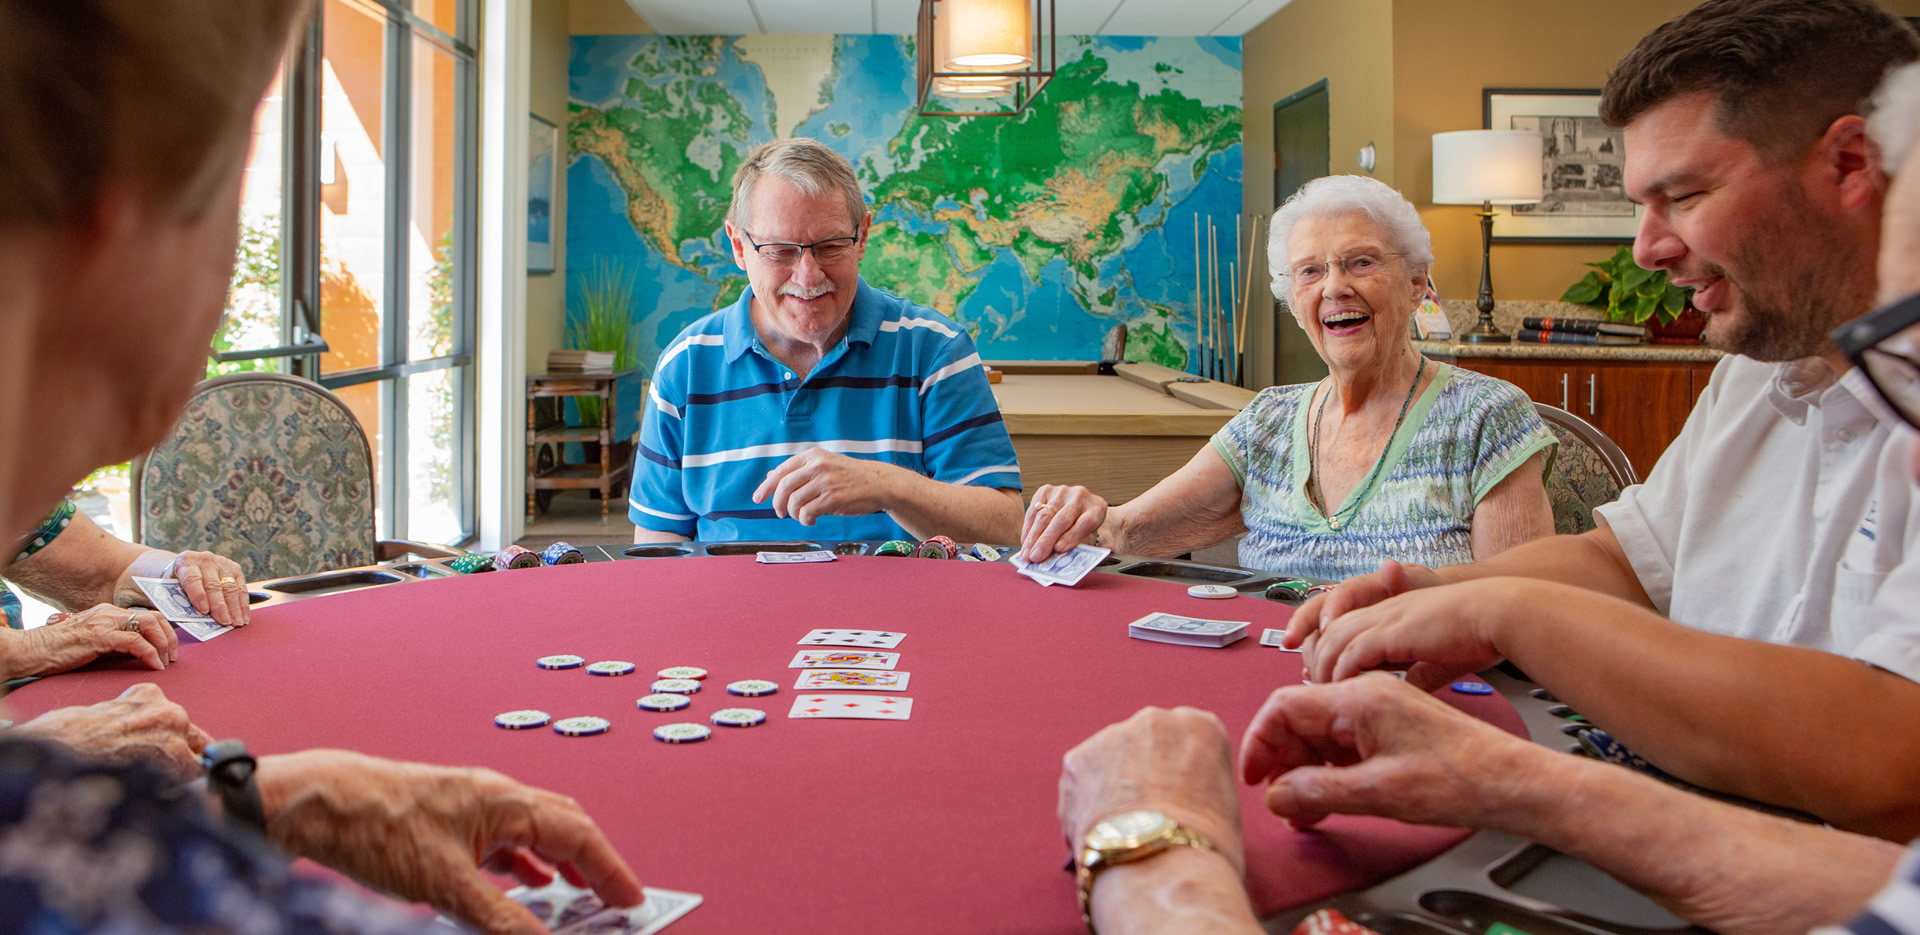 Residents playing a friendly game of cards